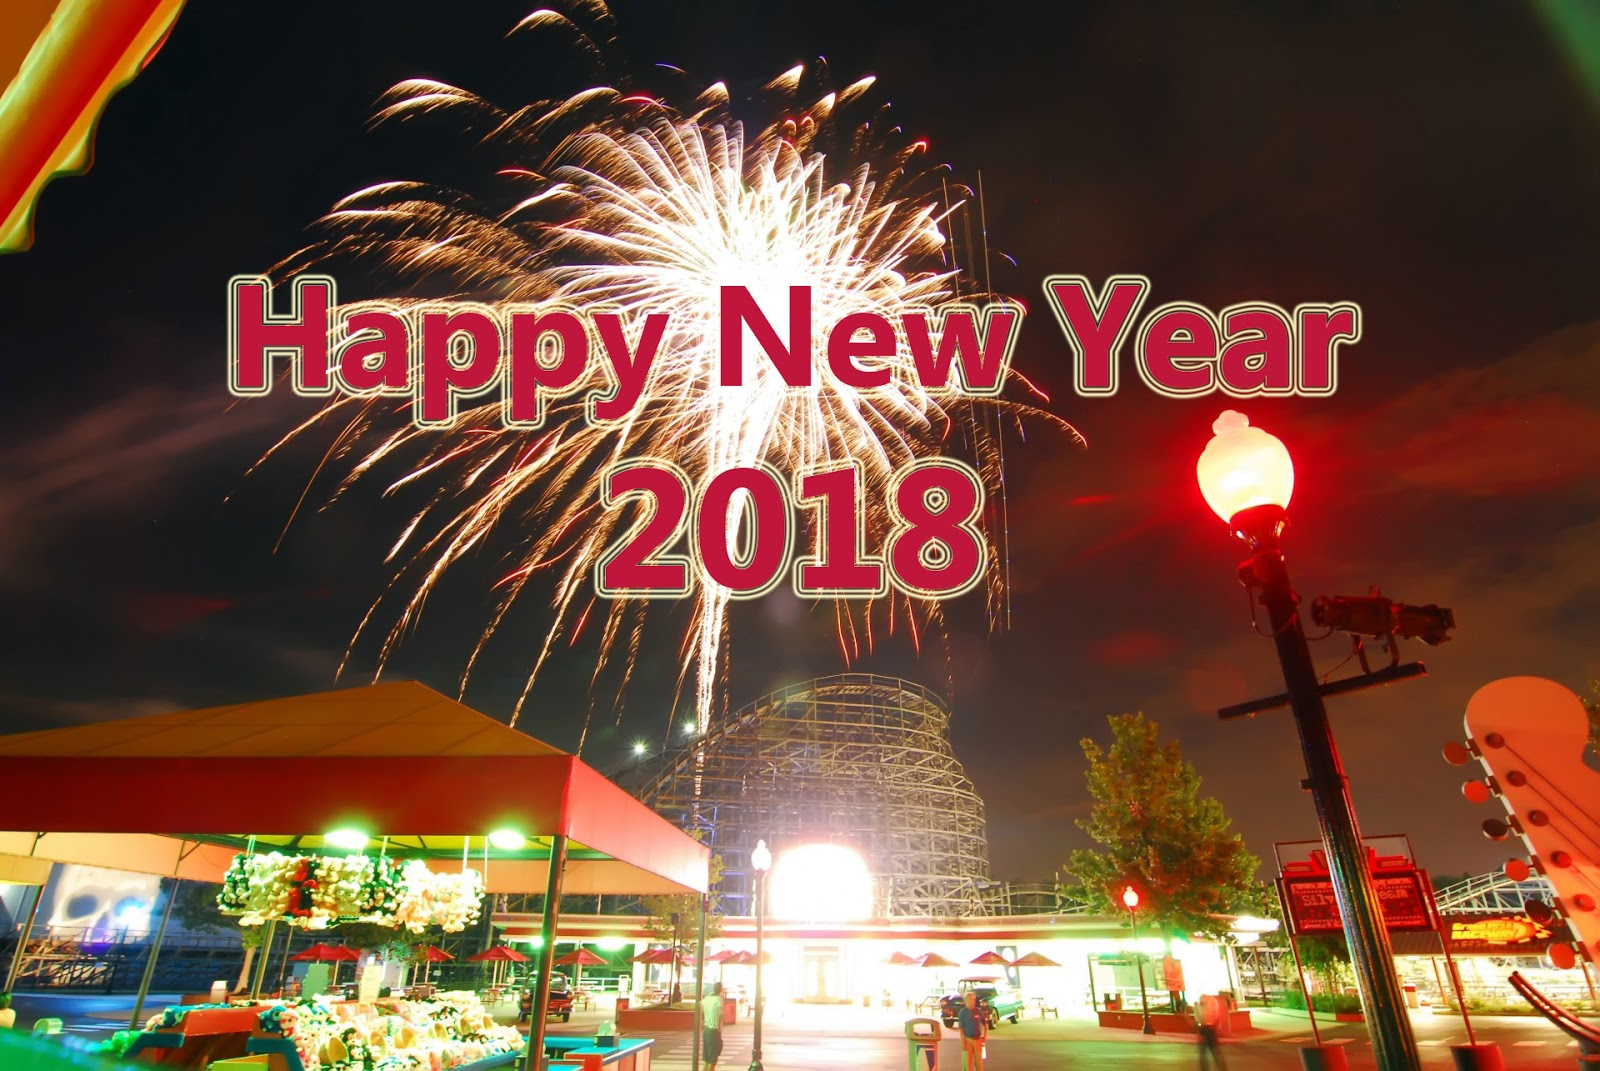 happy new year 2018 wallpapers hd images happy new year 1600x1071